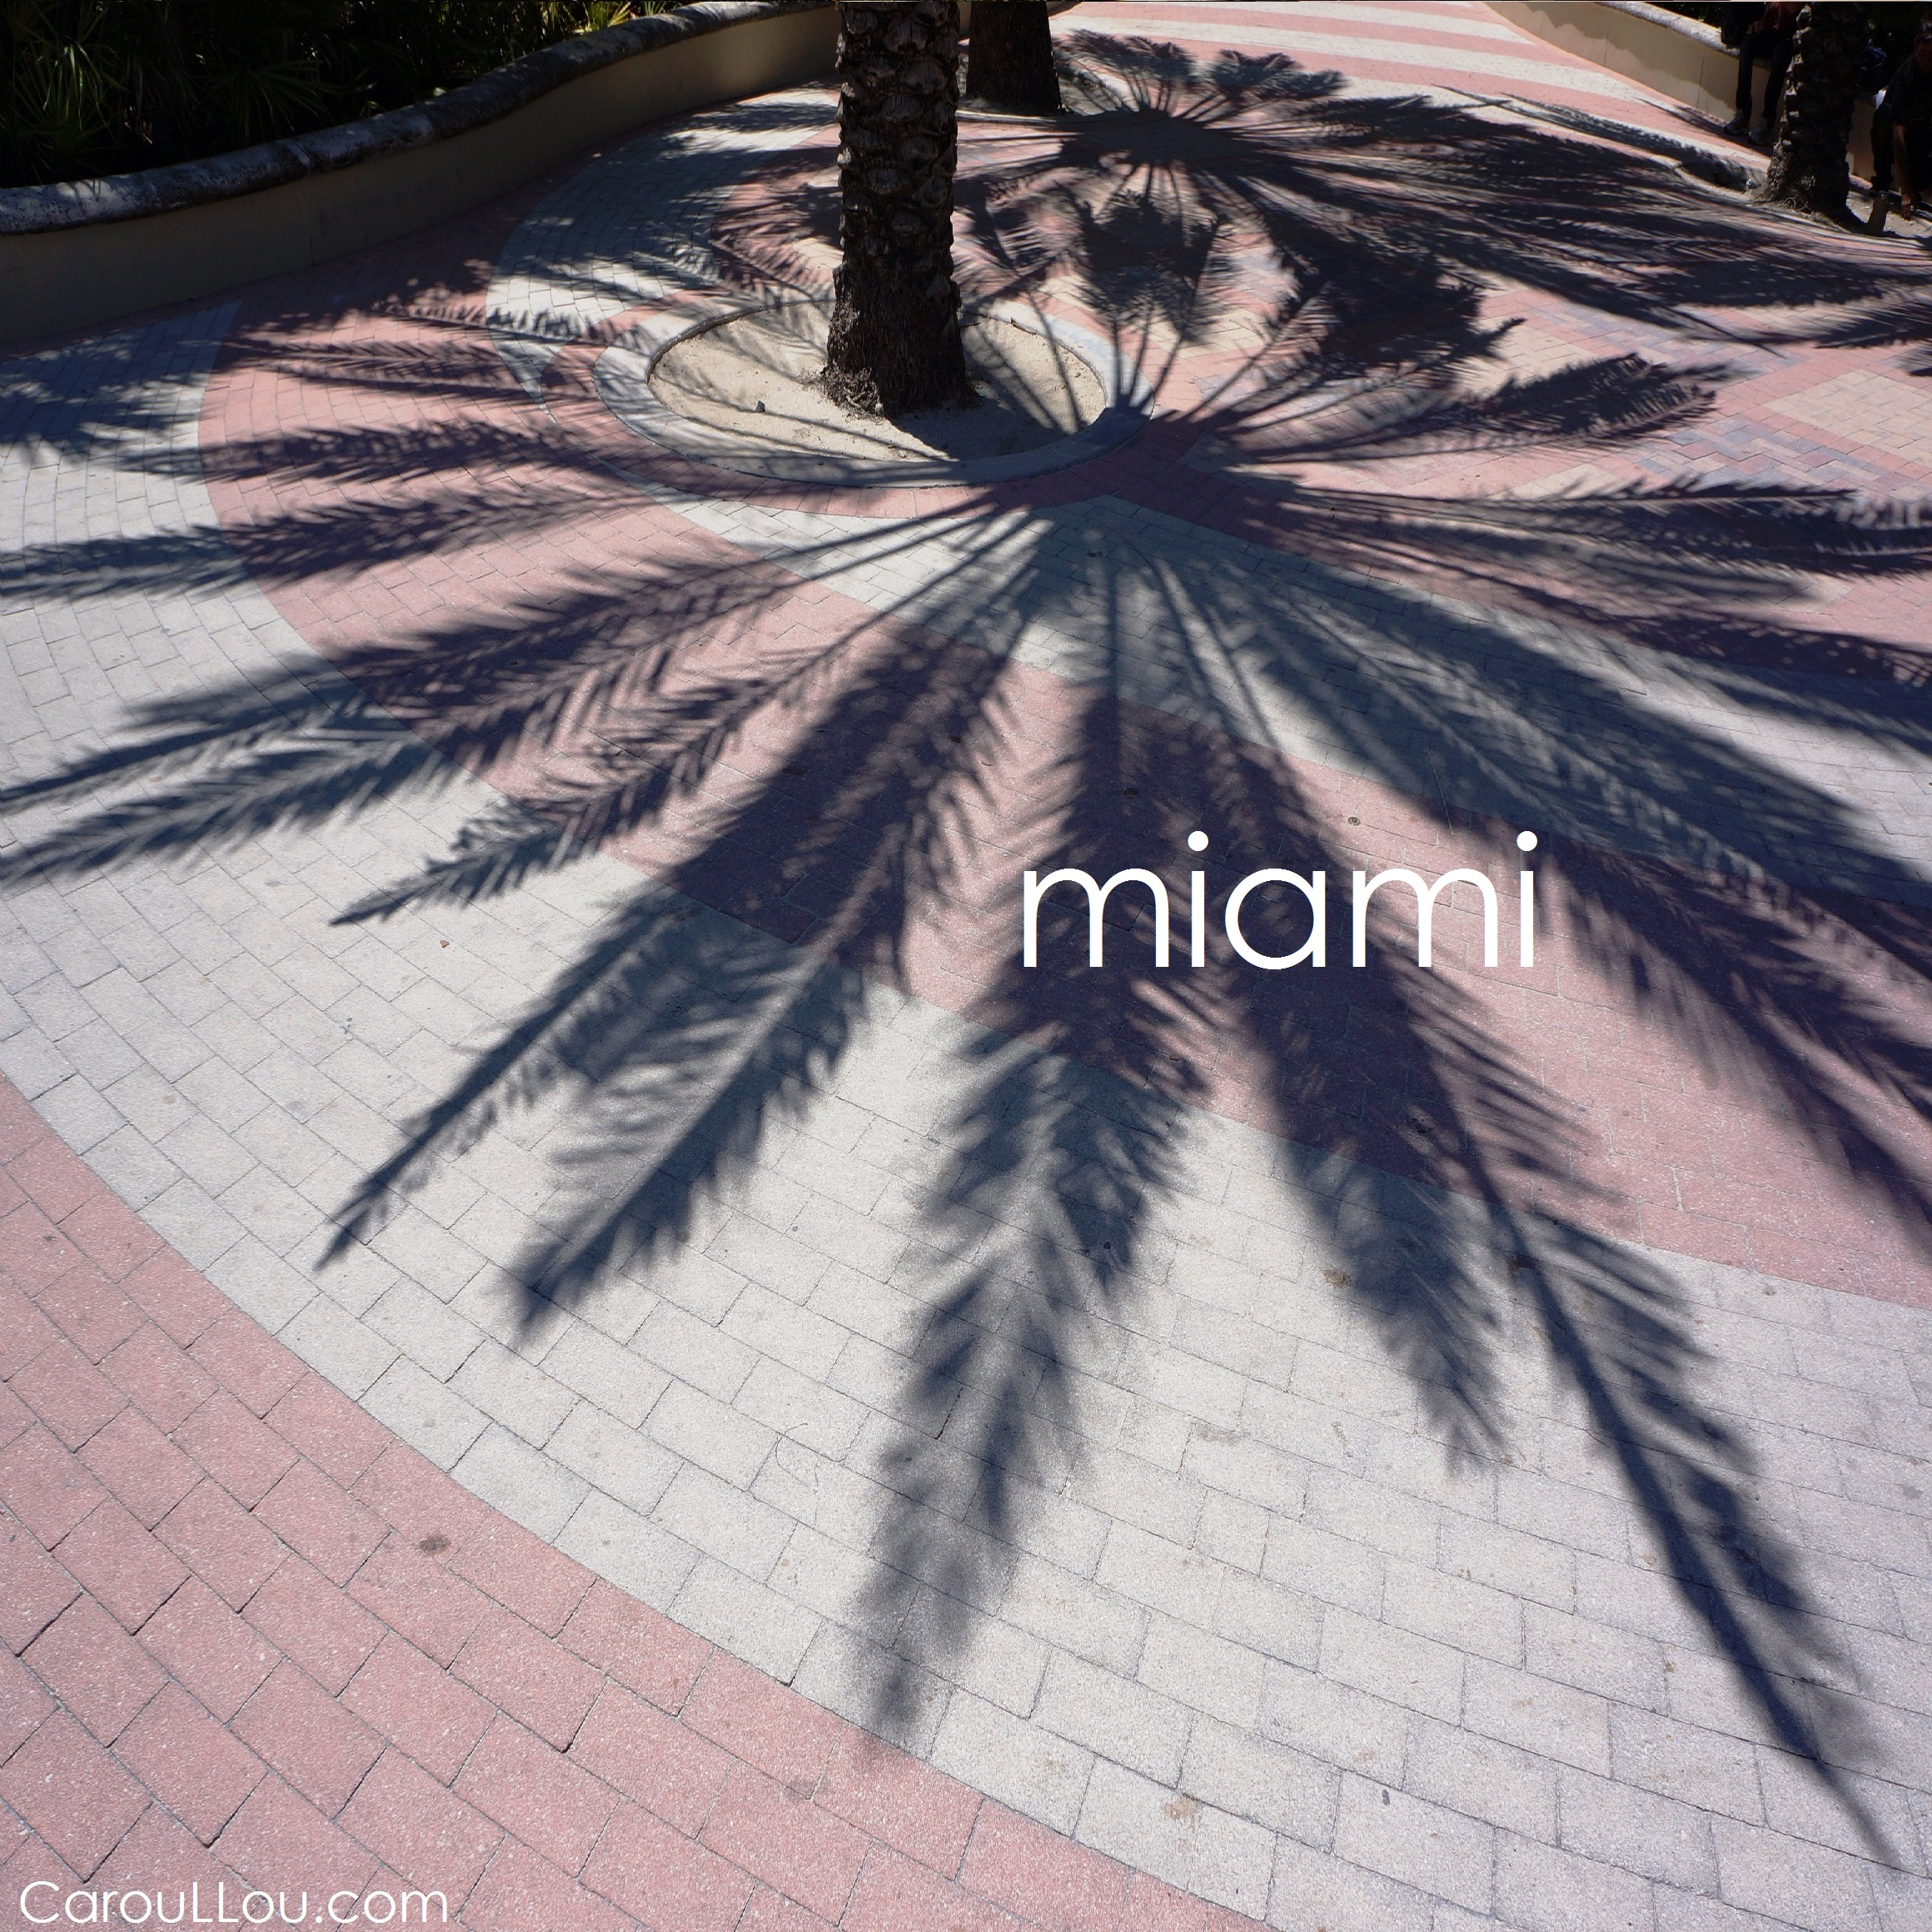 CarouLLou.com Carou LLou in Miami South Beach palm shadow +-